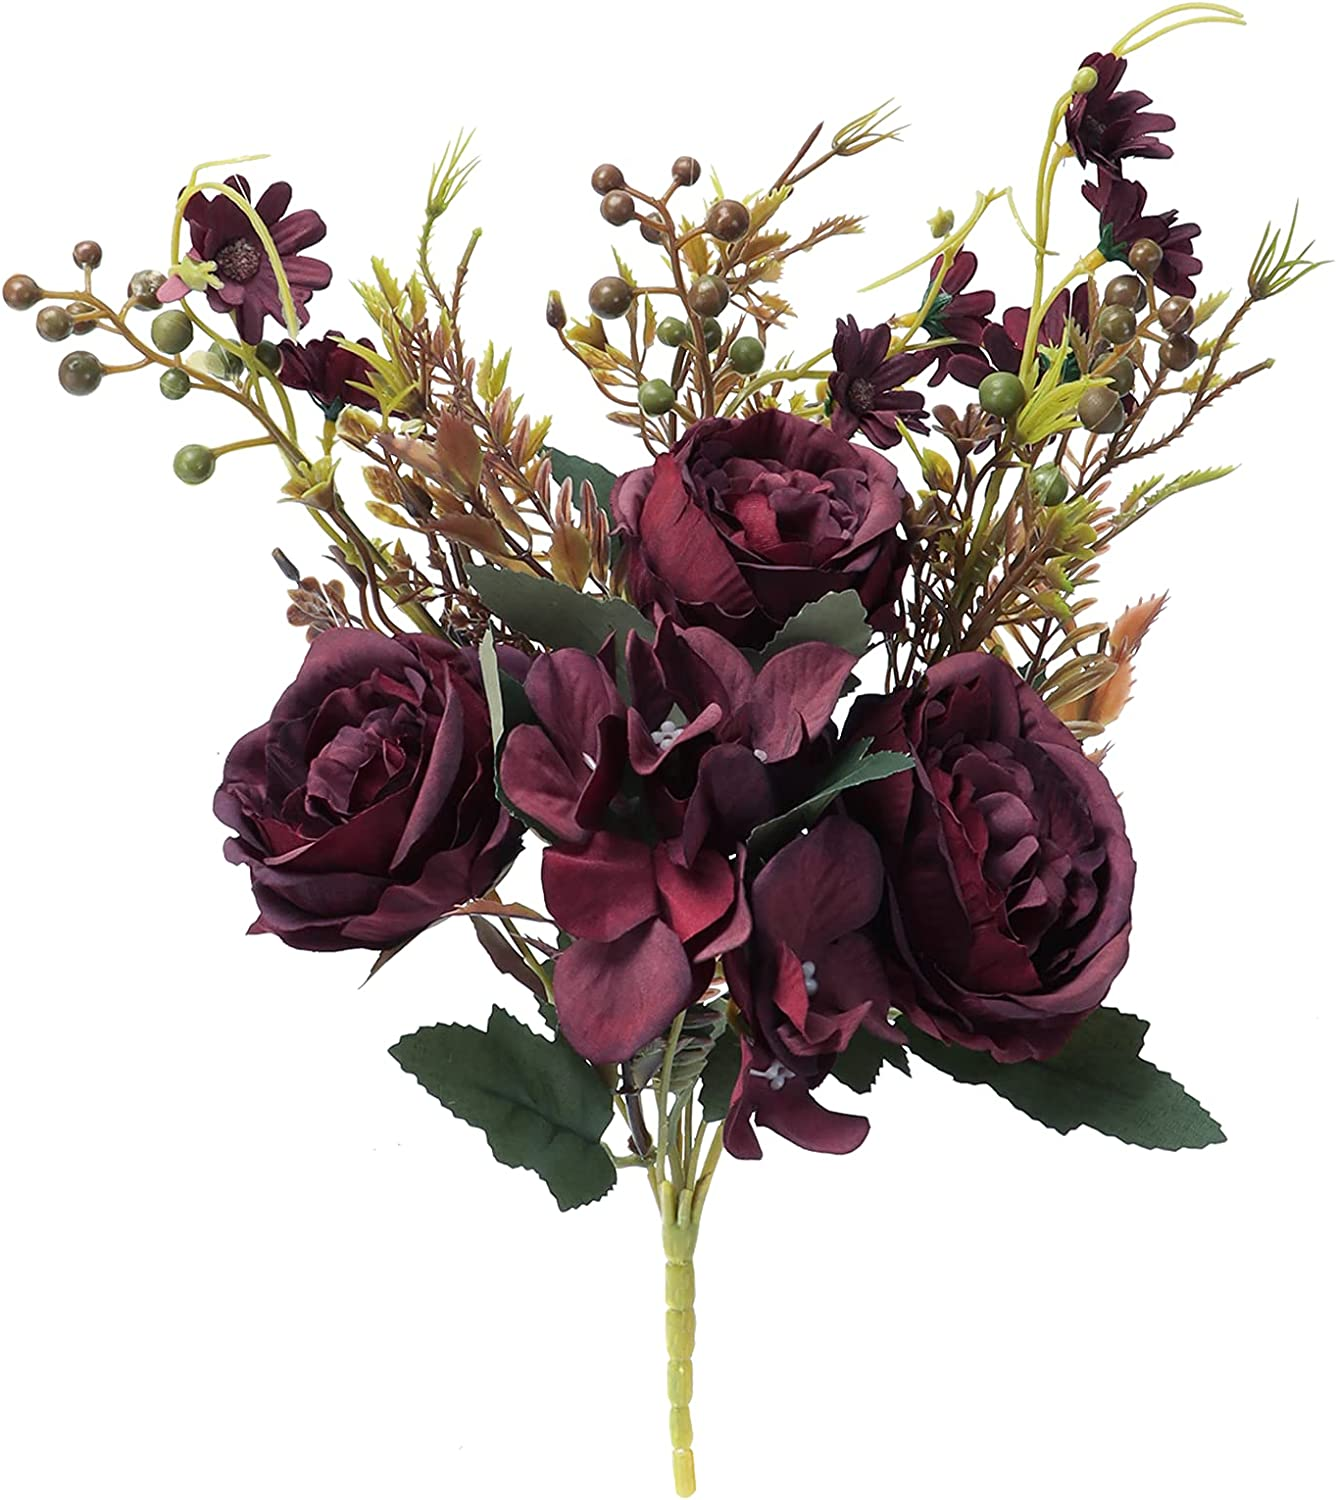 Fake Flowers Vintage Peony Artificial Flowers Hydrangea Bouquet for Wedding Home Decoration (Dark Red)